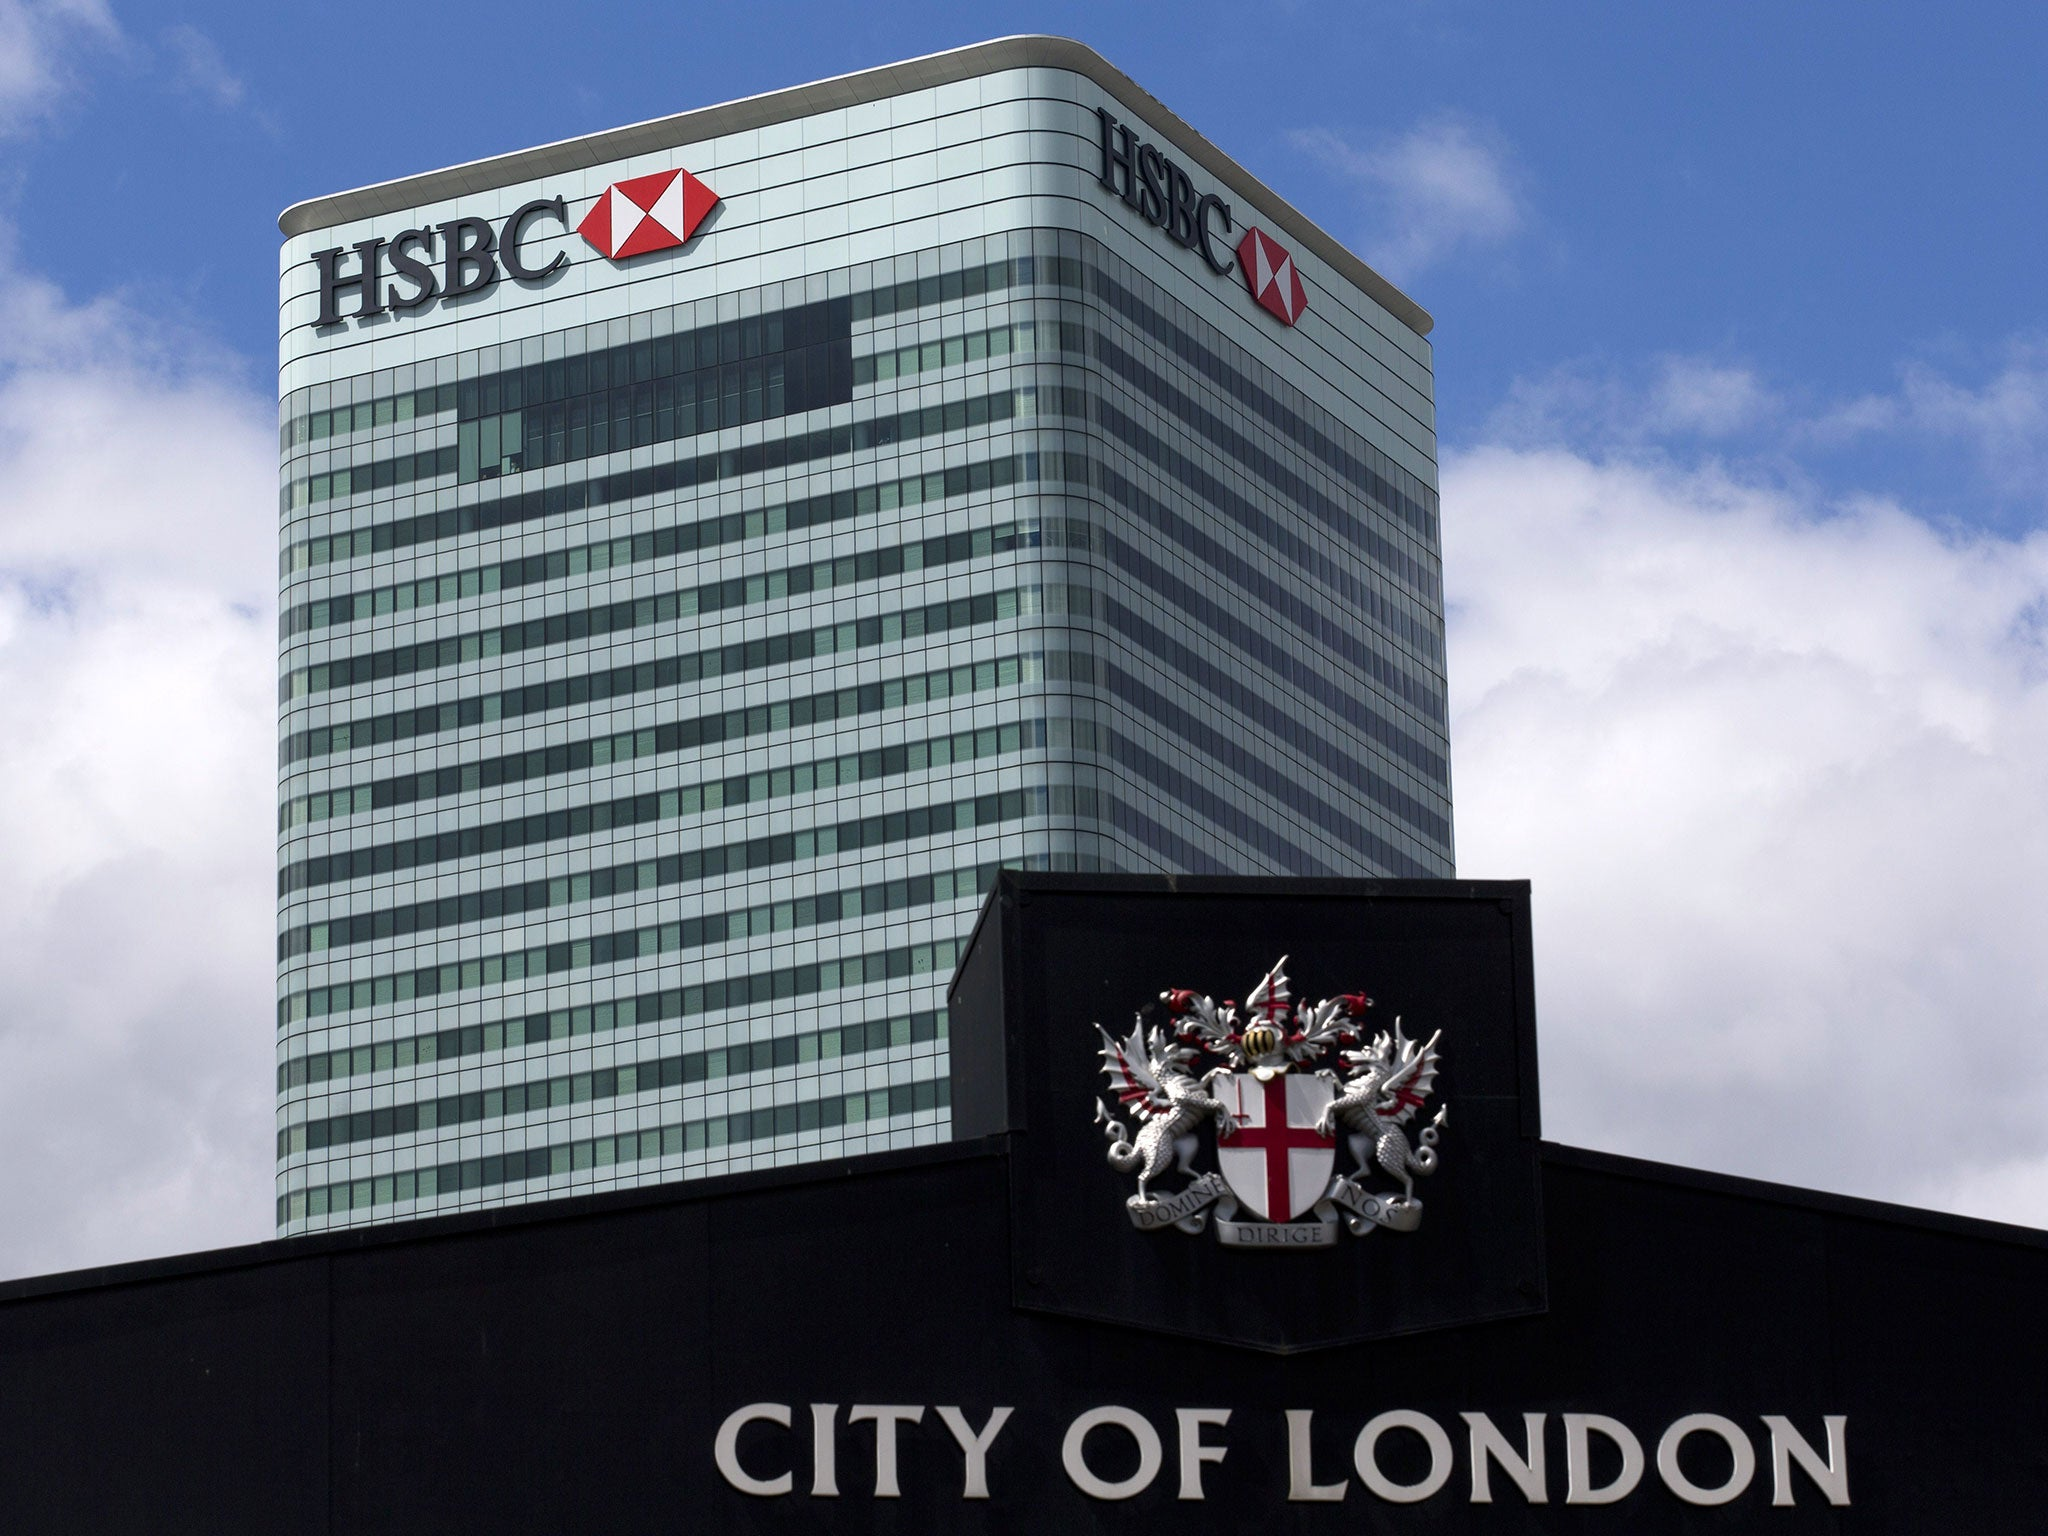 hsbc profits down 86 after big losses from brazilian bank sale